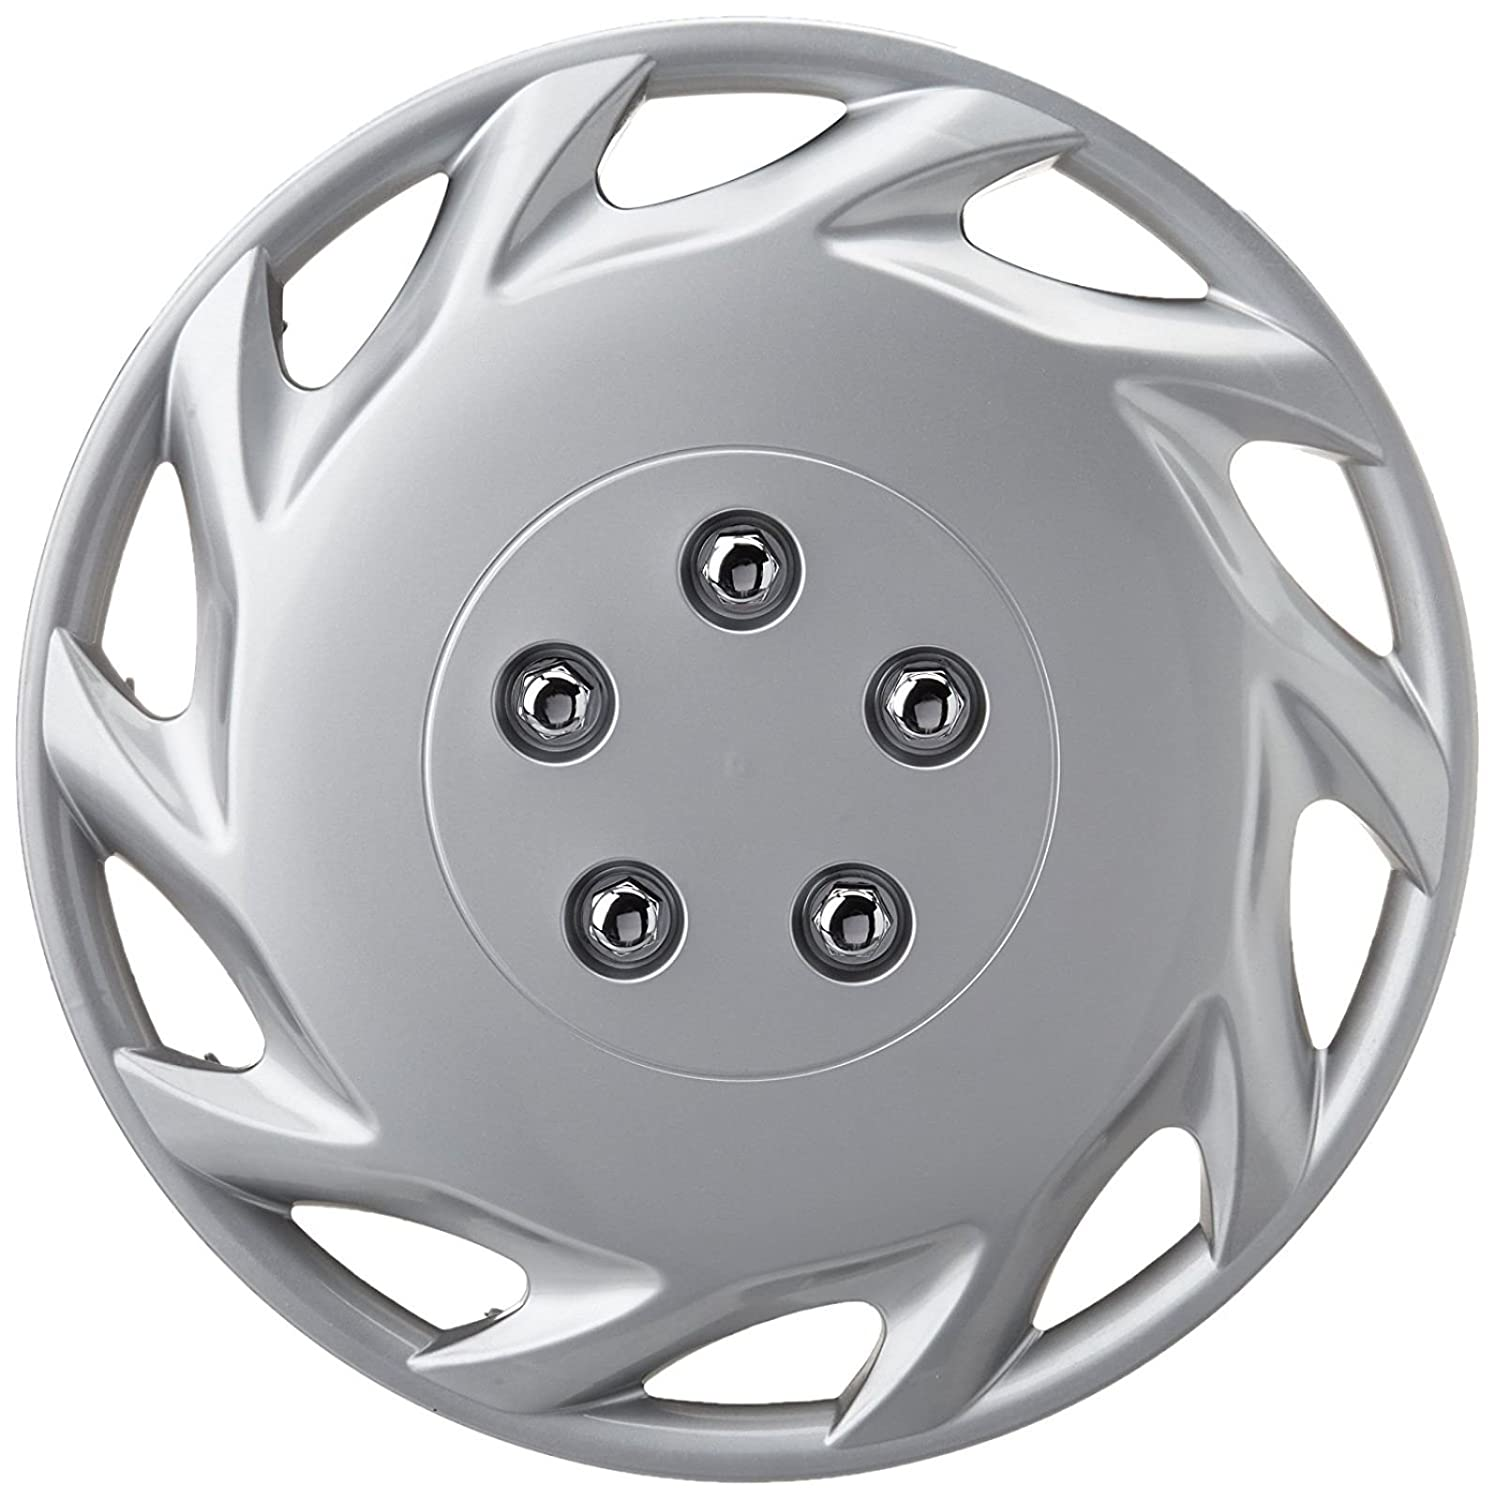 XtremeAuto/® 14 Classic Silver Car Wheel Trim Hub Cap Covers Turbine Style Includes Chrome Valve Caps and Silver Cable Ties